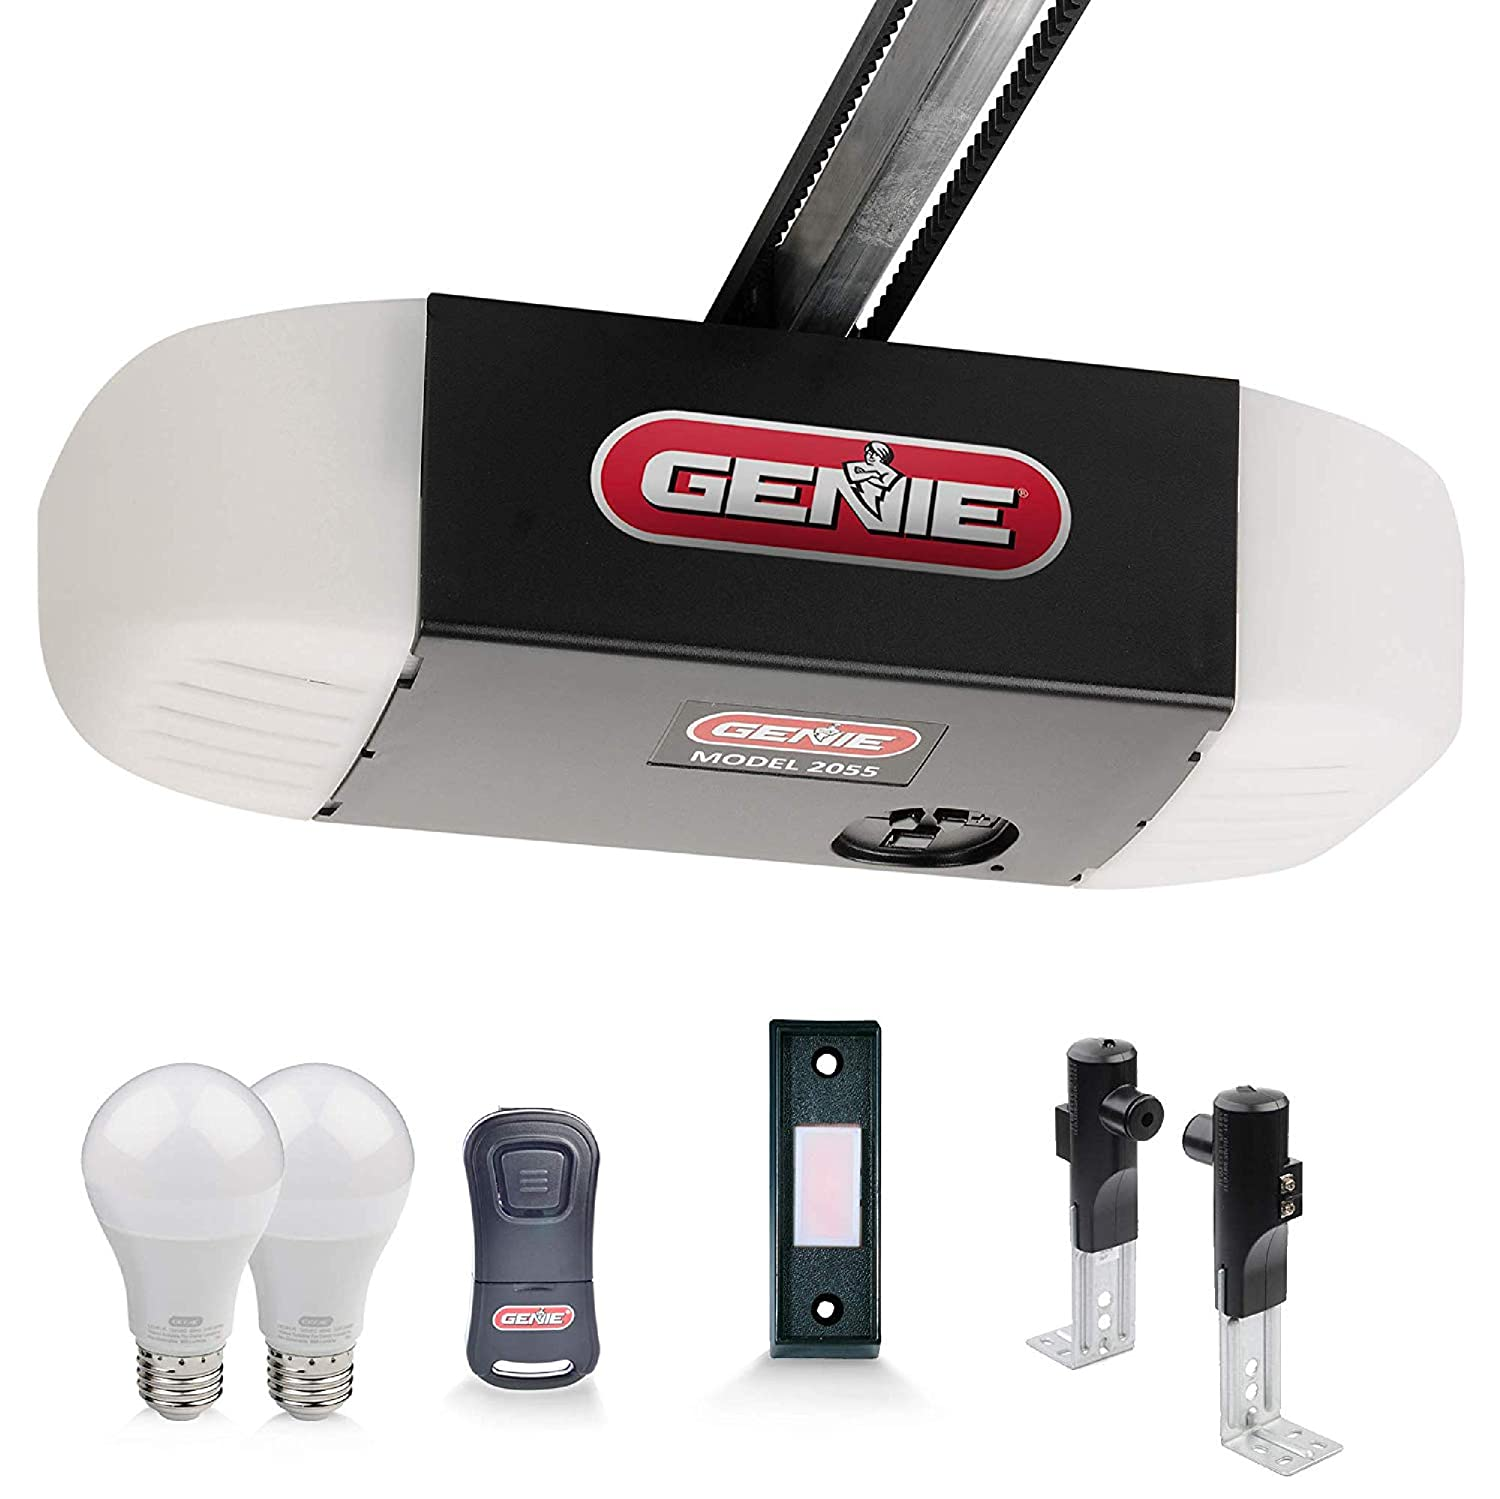 Genie 2055-LED Stealth 500 Essentials, LED Bulbs Included, Ultra-Quiet Belt Drive Garage Door Opener